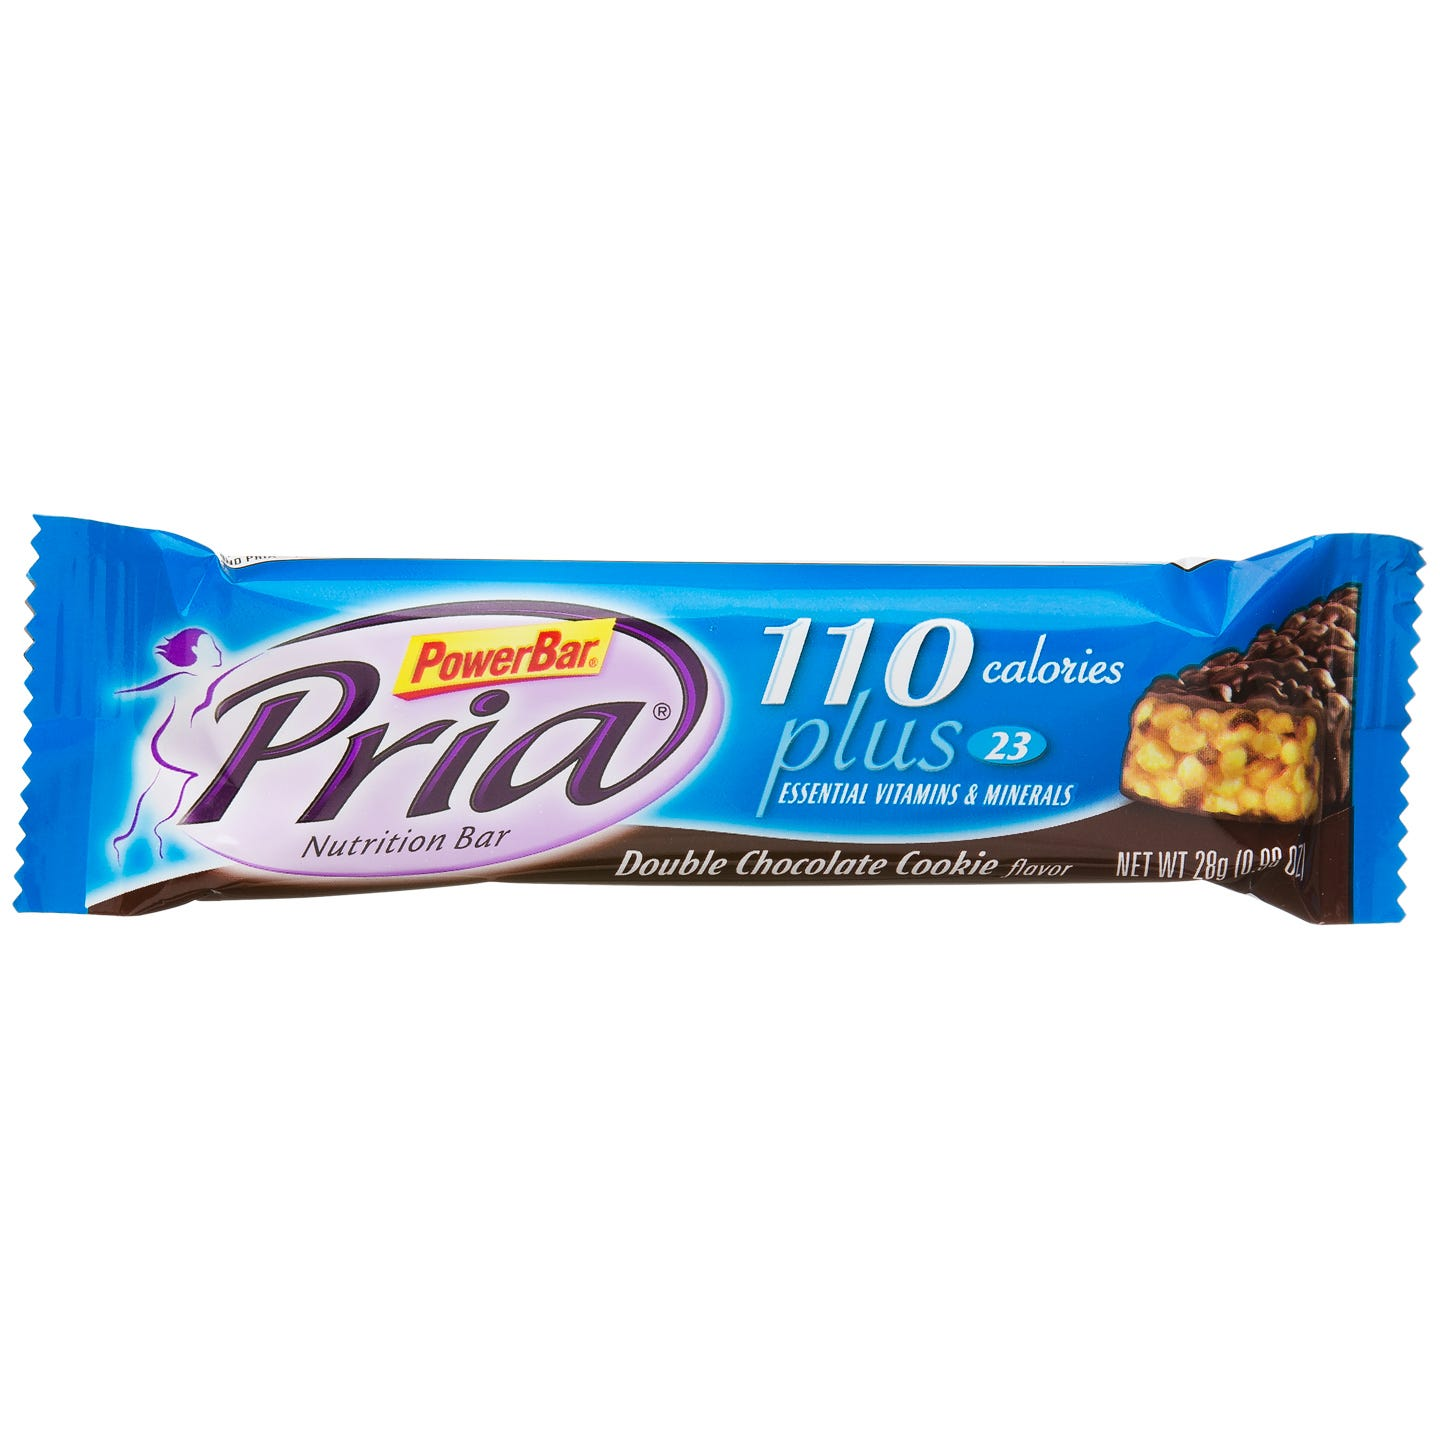 PowerBar Pria Nutrition Protein Bars - Double Chocolate Cookie